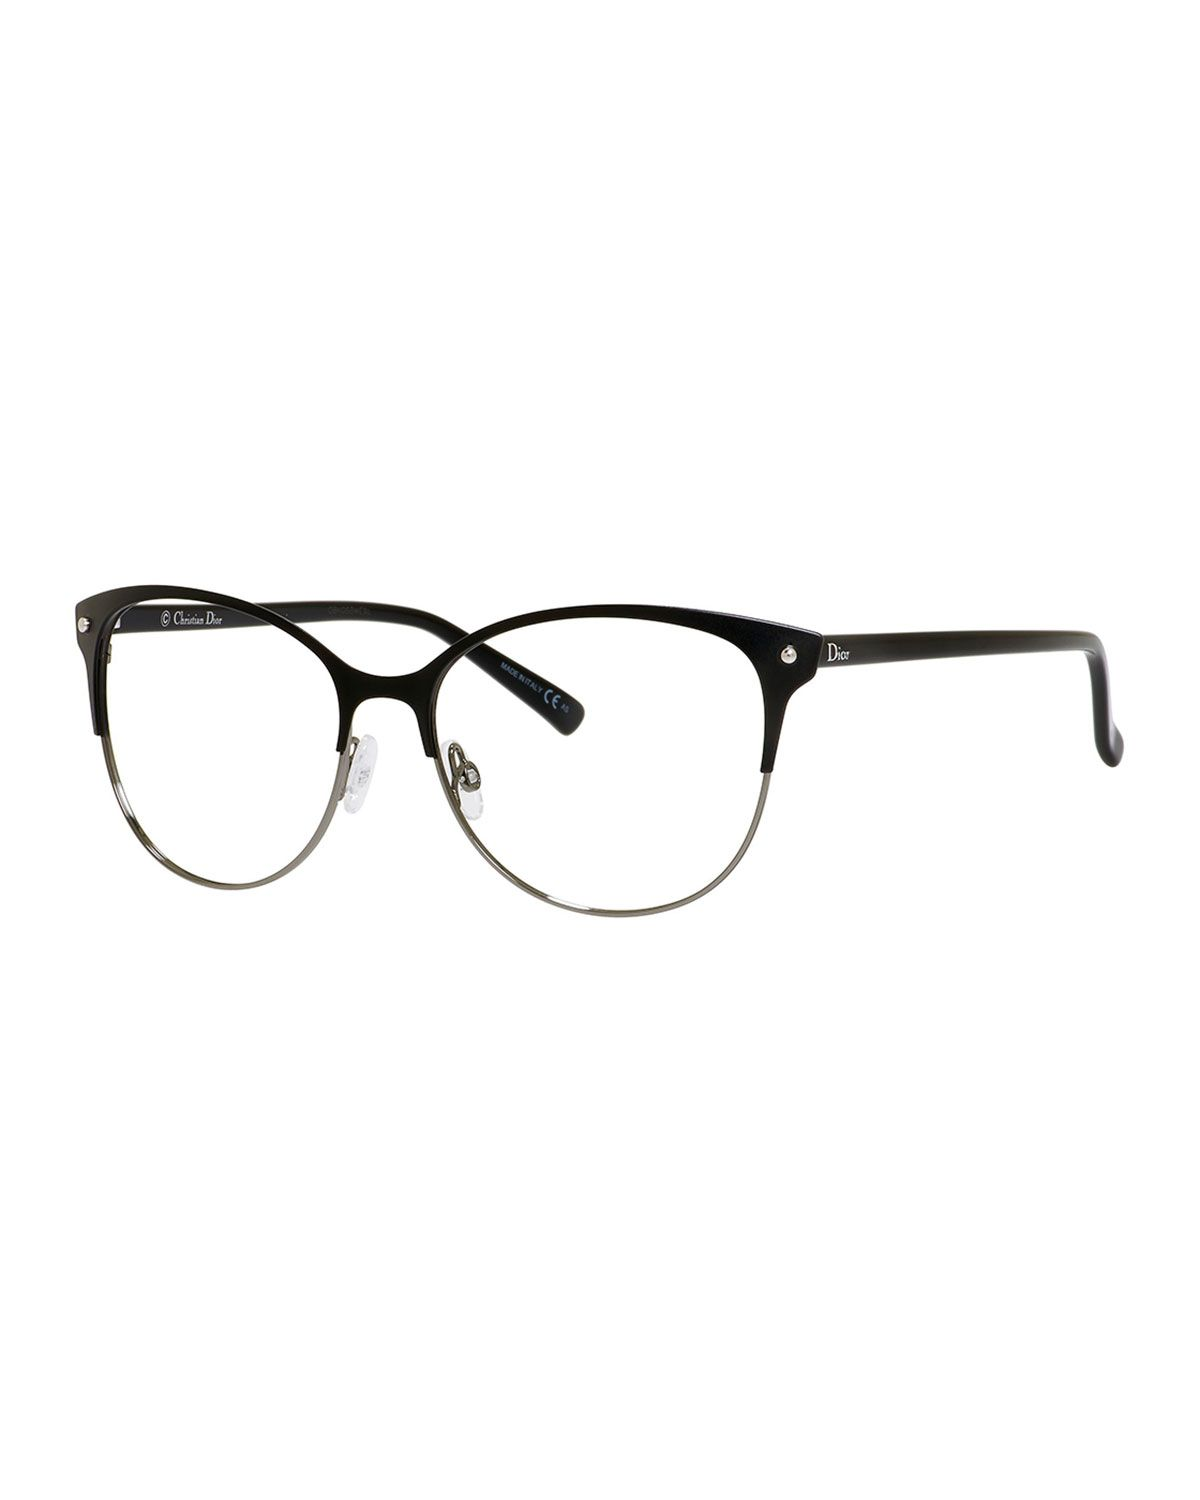 Dior Semi-Rimless Fashion Glasses   For my husband in 2019 ... c8e36754a8